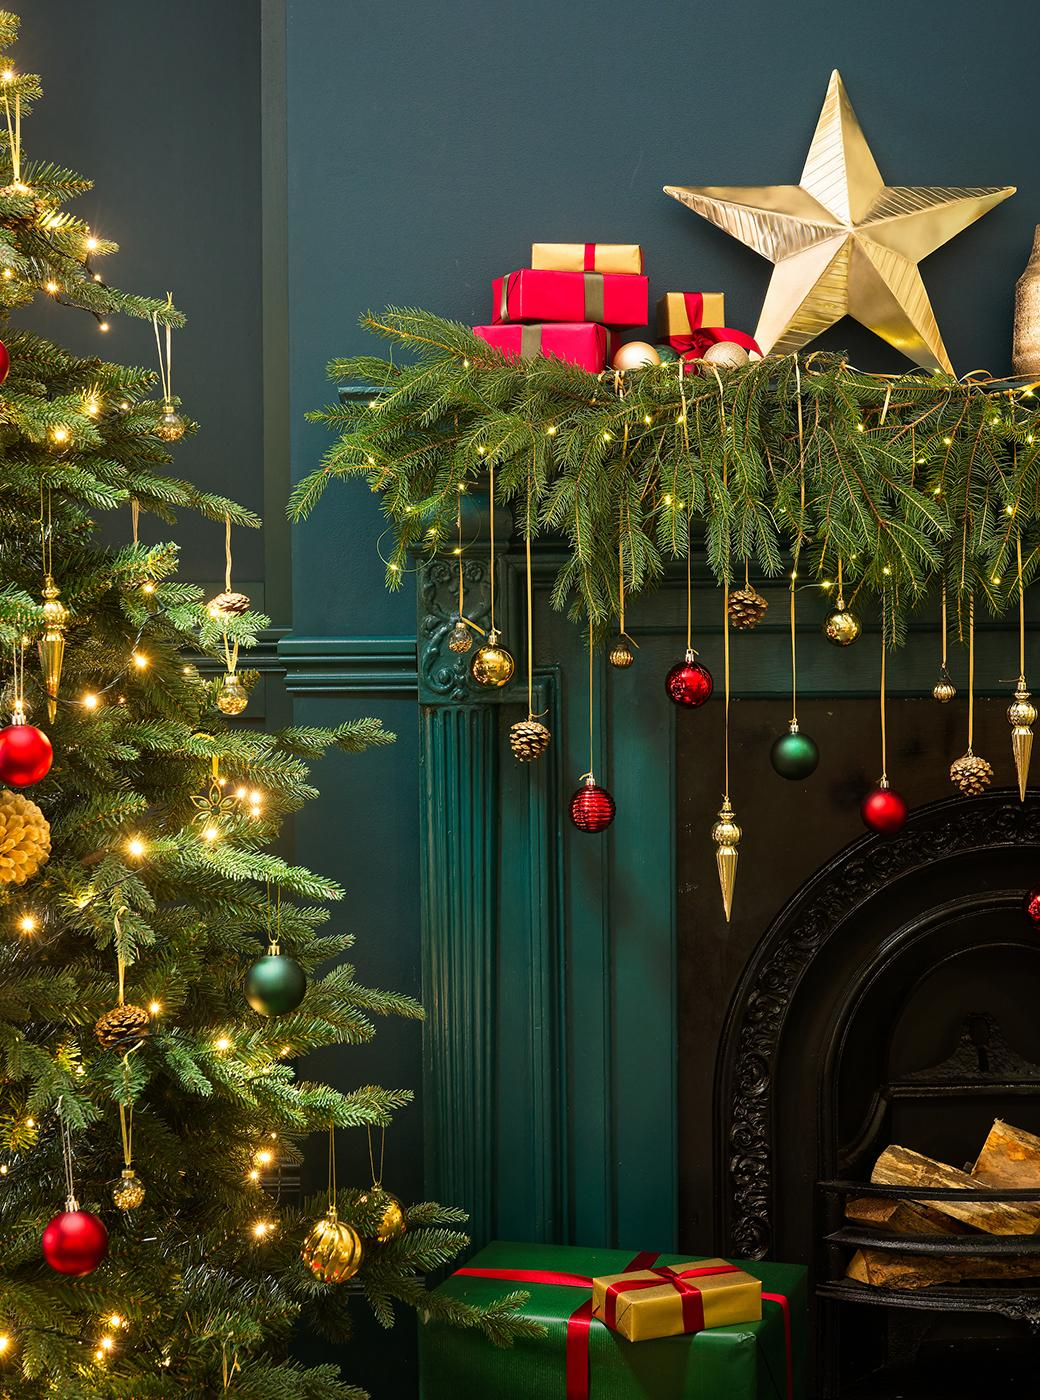 Christmas foliage on a mantelpiece with bauble decorations.